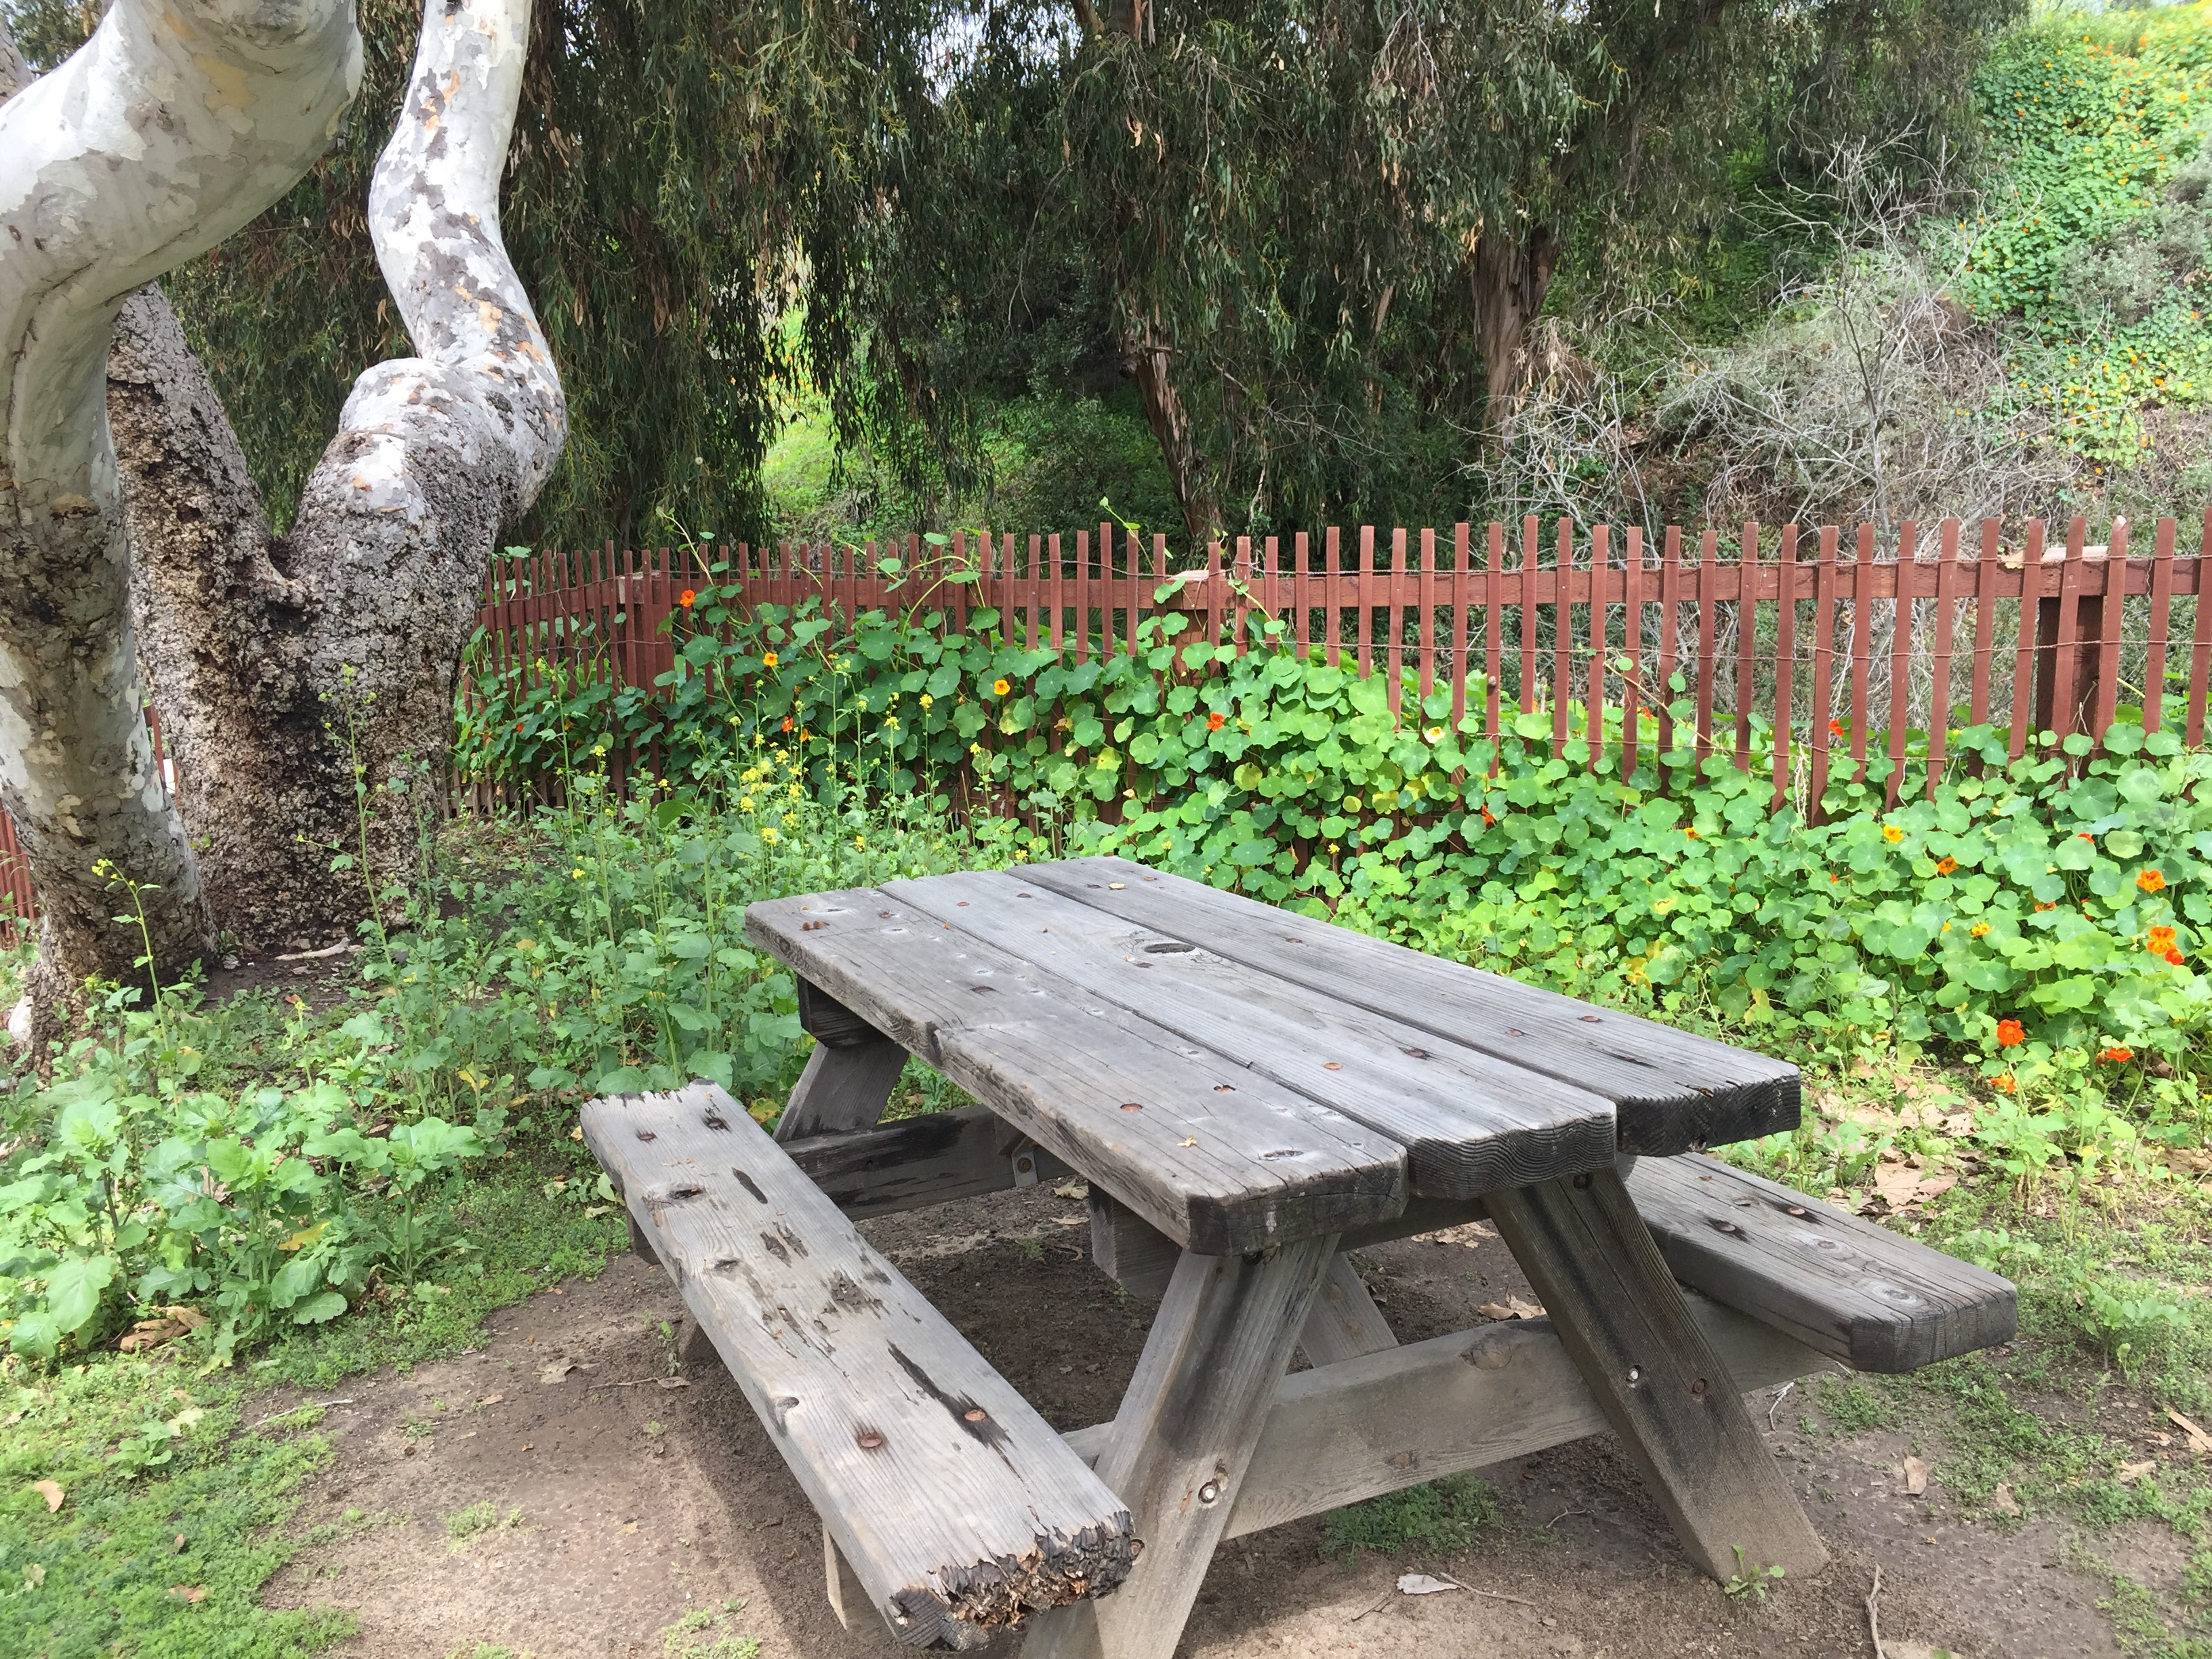 Crystal Cove picnic table